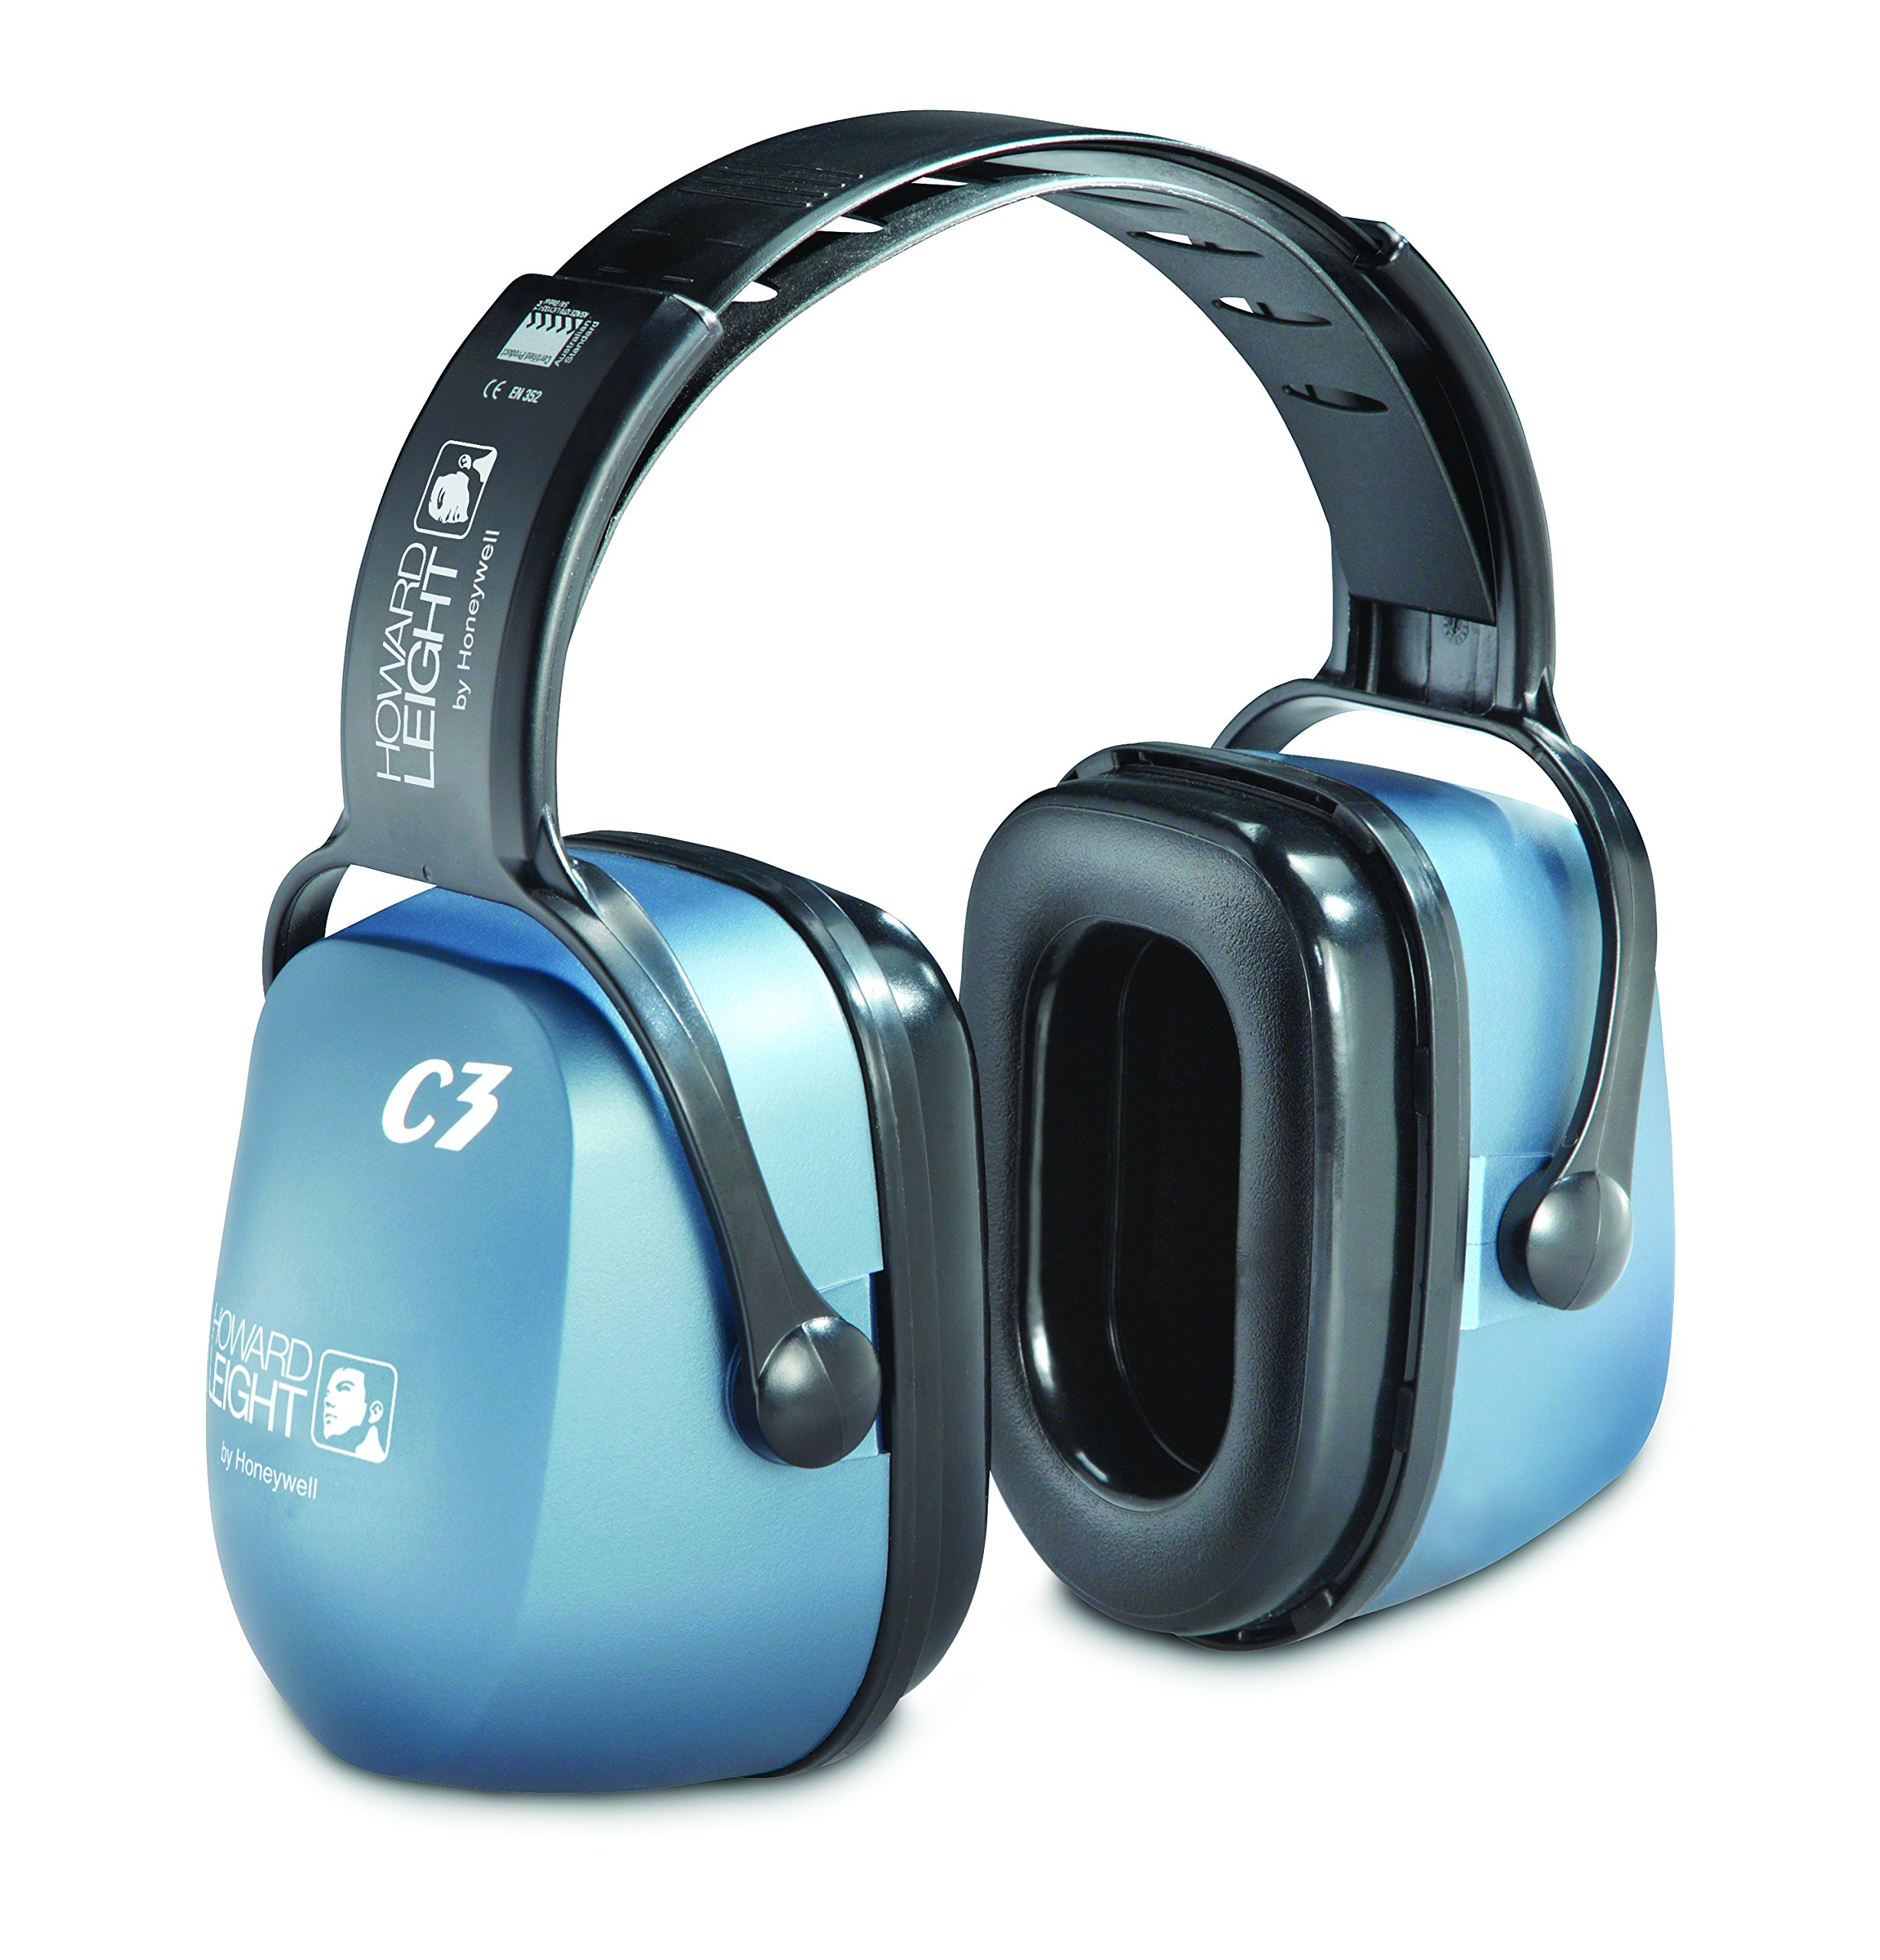 Howard Leight by Honeywell Clarity Series C3 Sound Management Safety Earmuff (1011146)